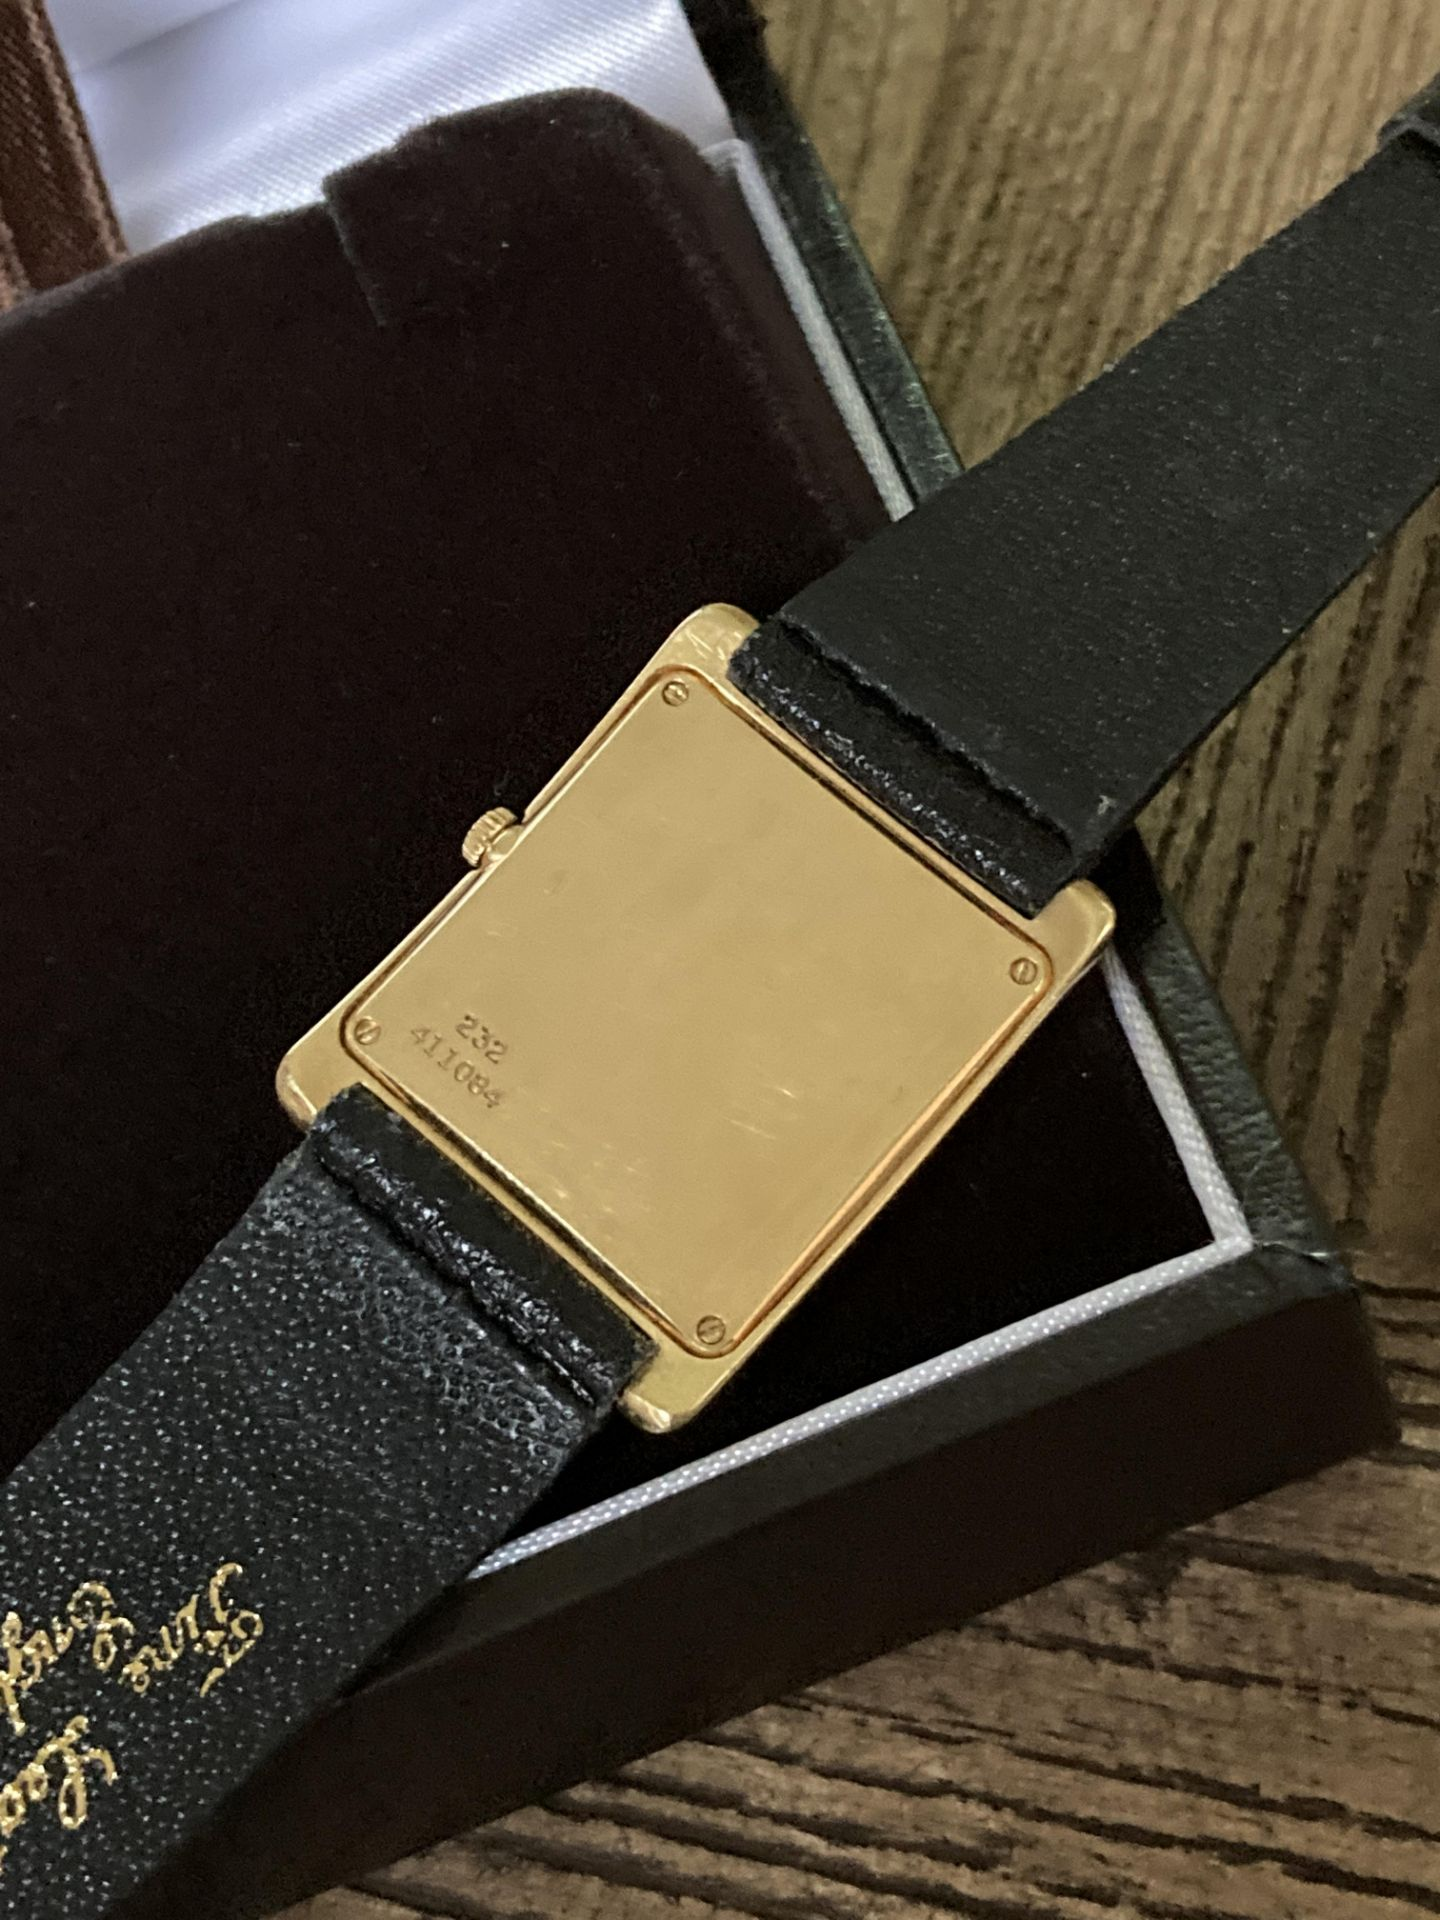 GOLD PIAGET WATCH - 22MM - Image 3 of 6